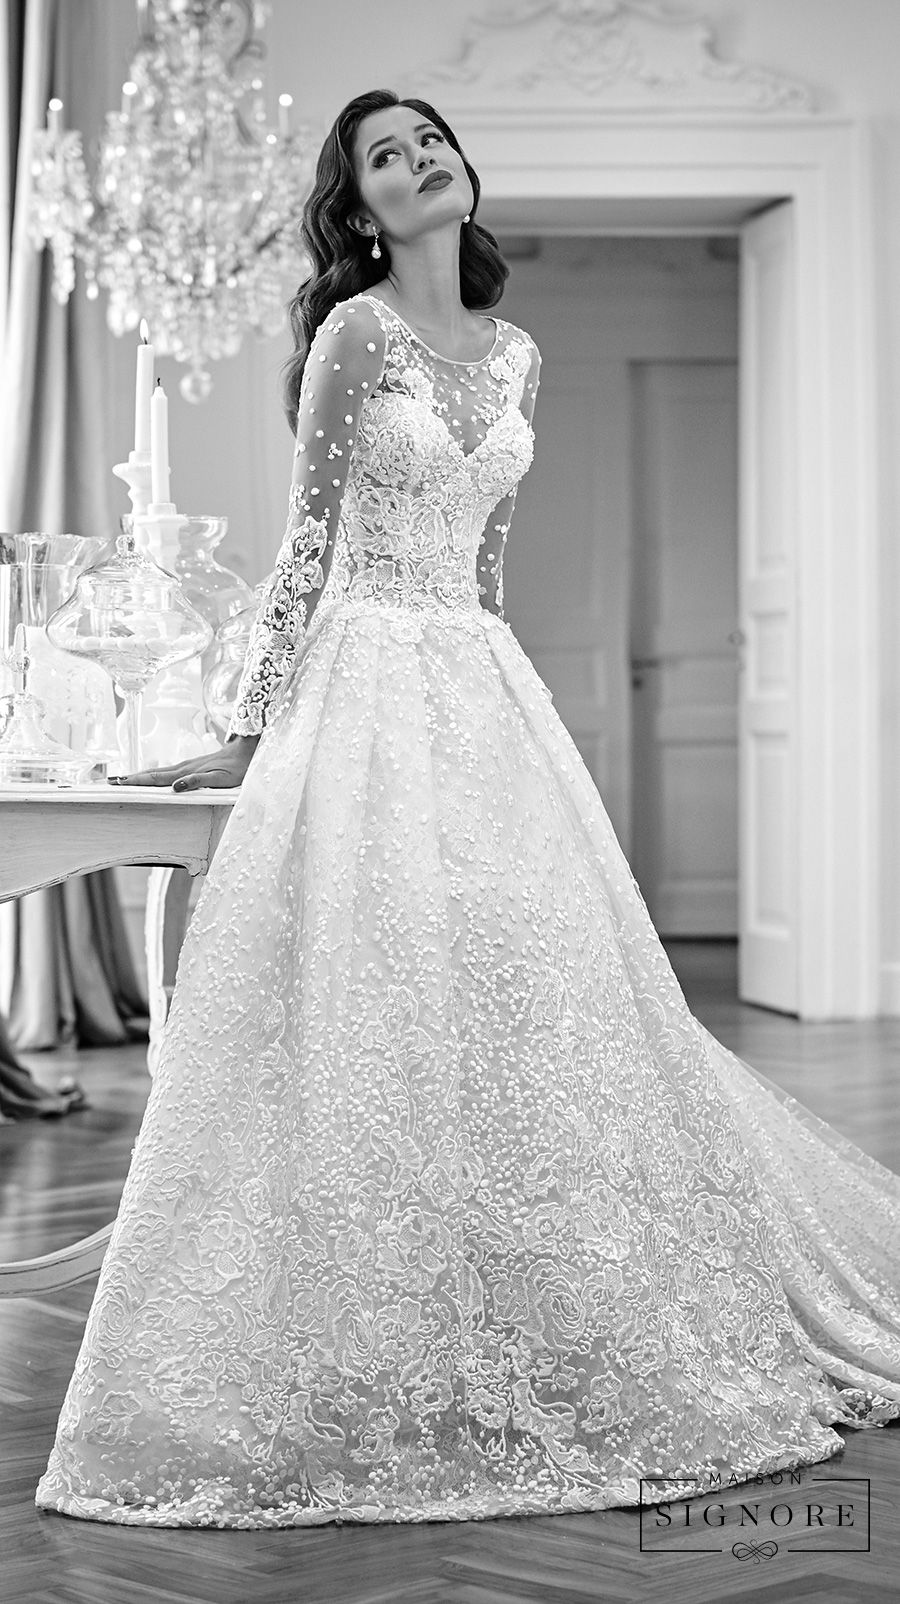 Maison signore exquisite made in italy wedding dresses u now